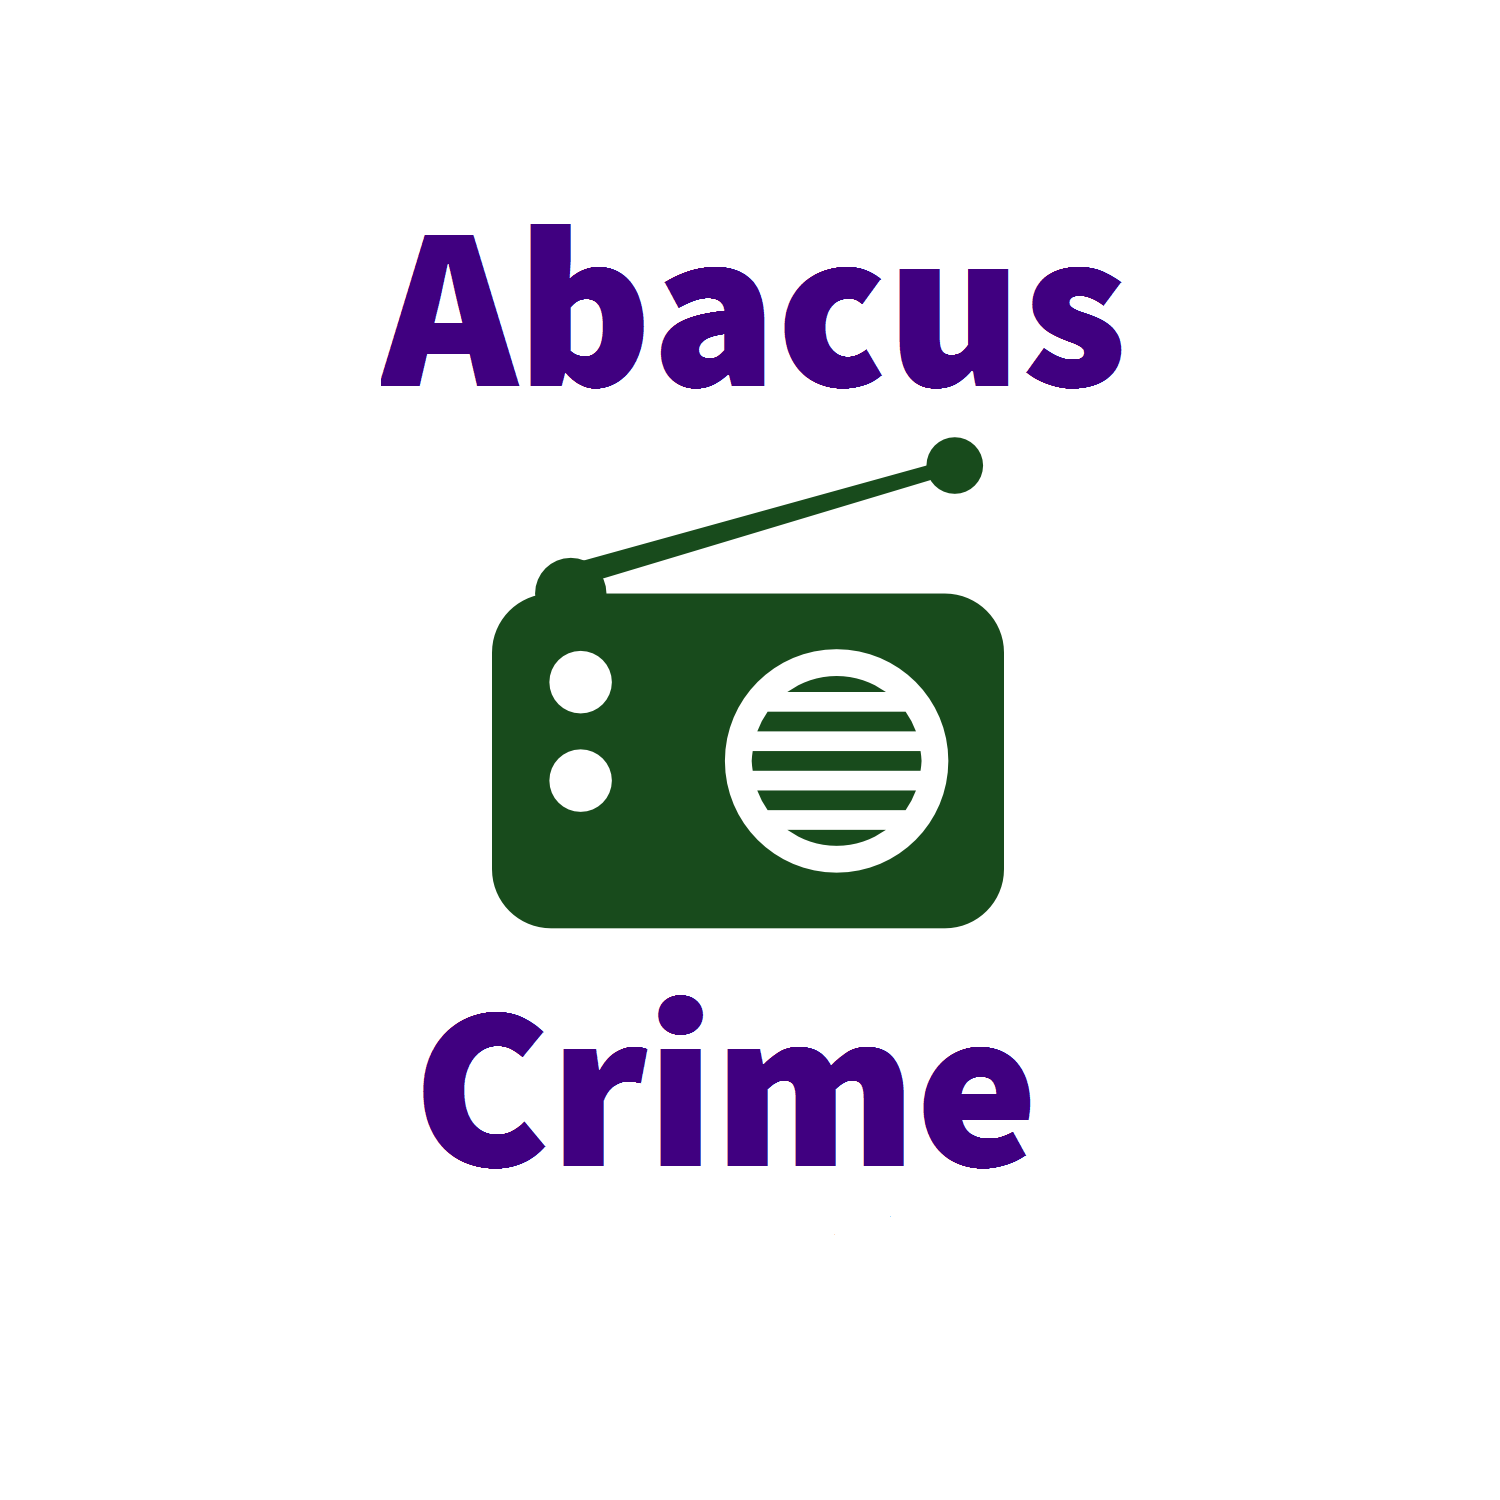 Abacus Crime